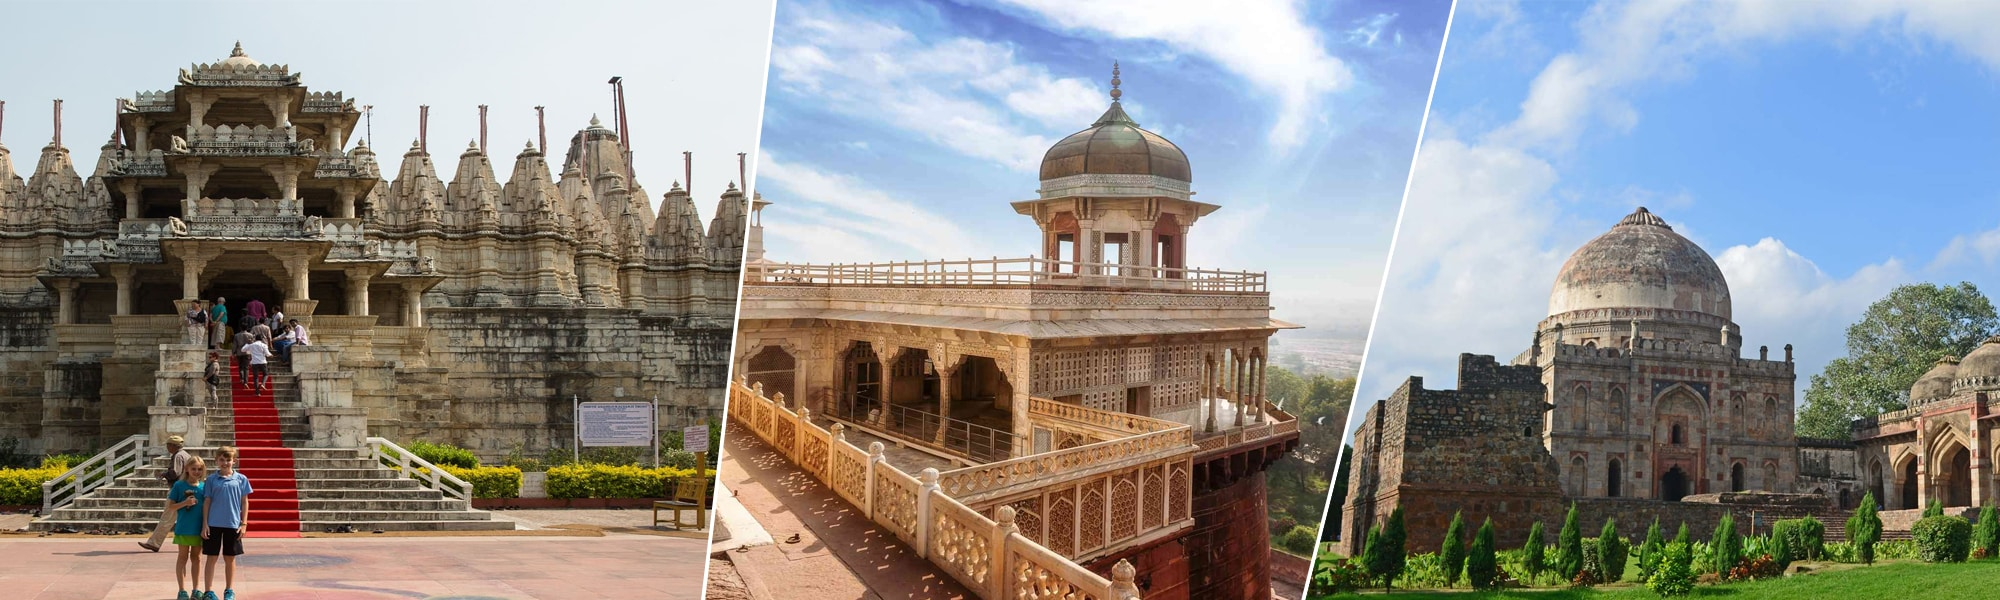 Delhi, Agra, and Rajasthan – The Golden Triangle Package Tour